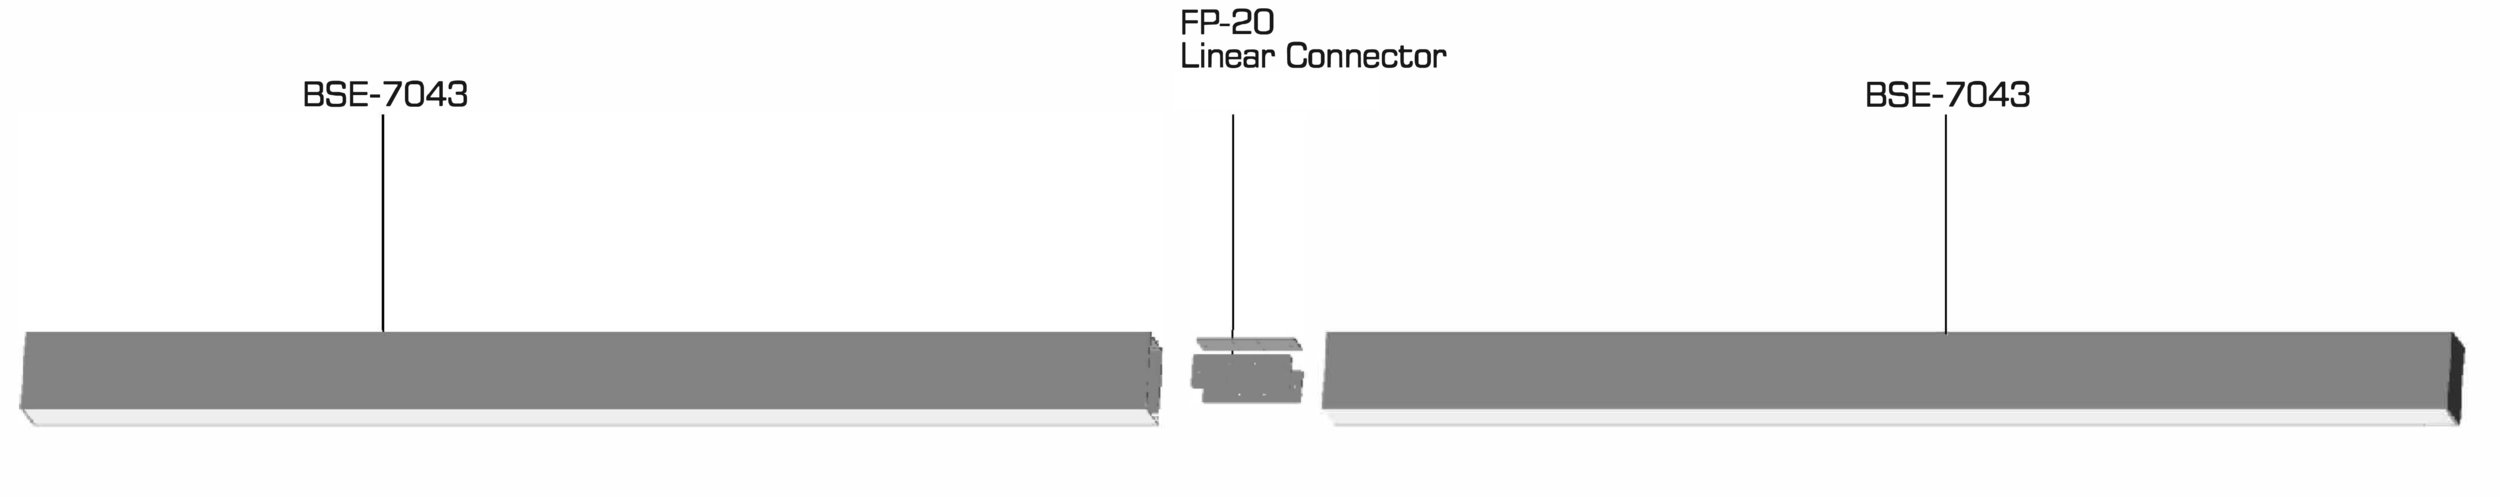 BSE7ConnectionDemo.jpg